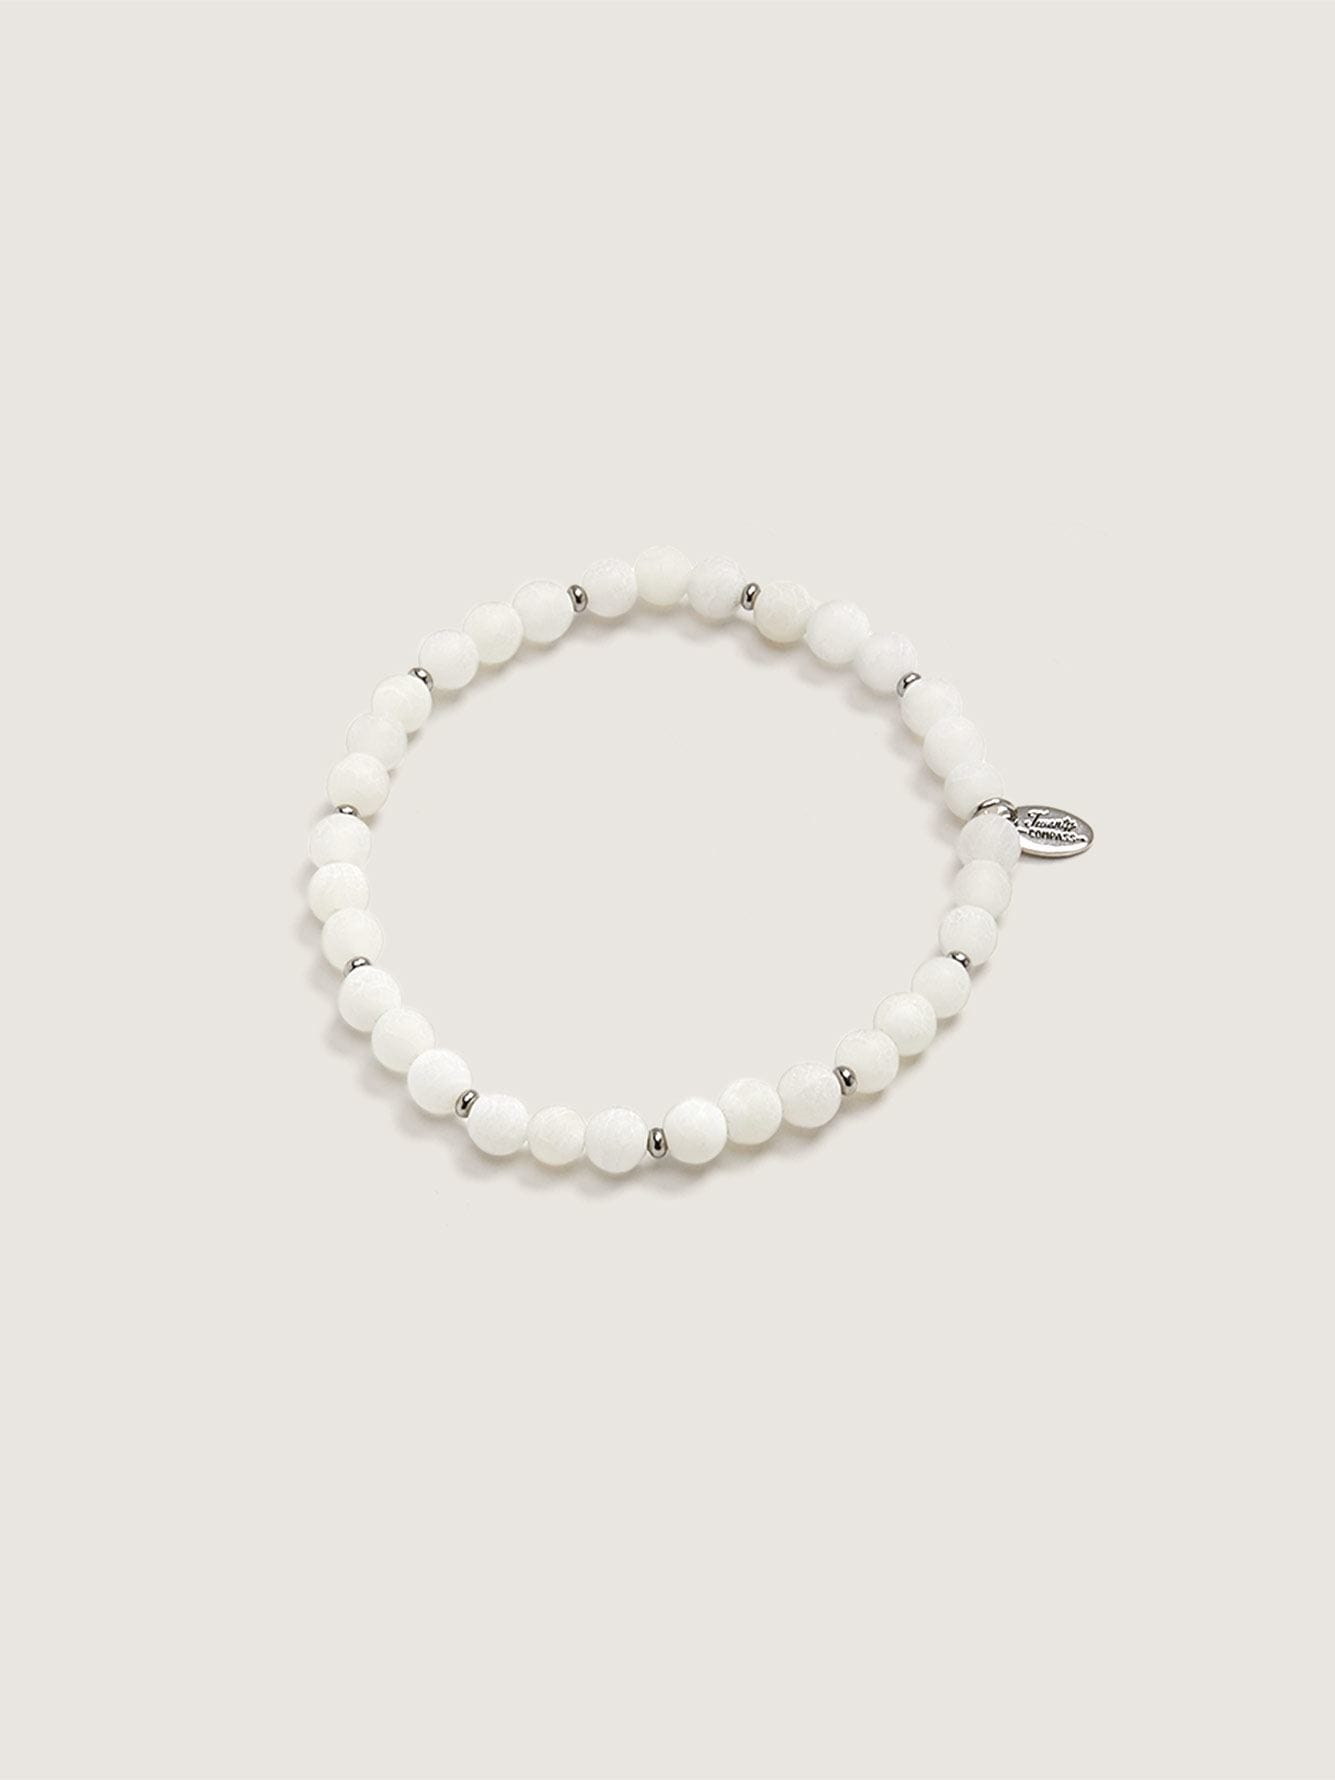 Cloud Bracelet - Twenty Compass